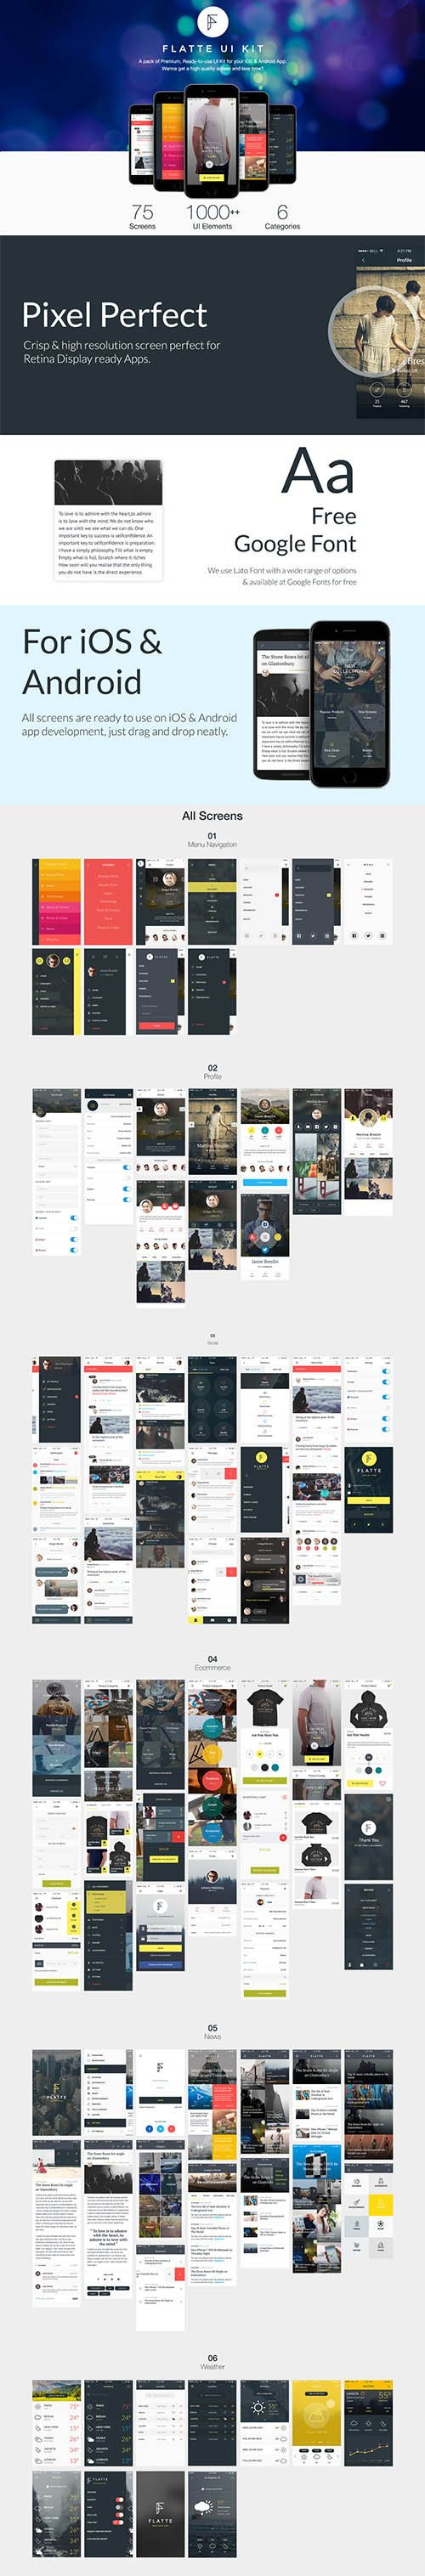 Flatte UI Kit - 75 Screen iOS Mobile App UI Kit